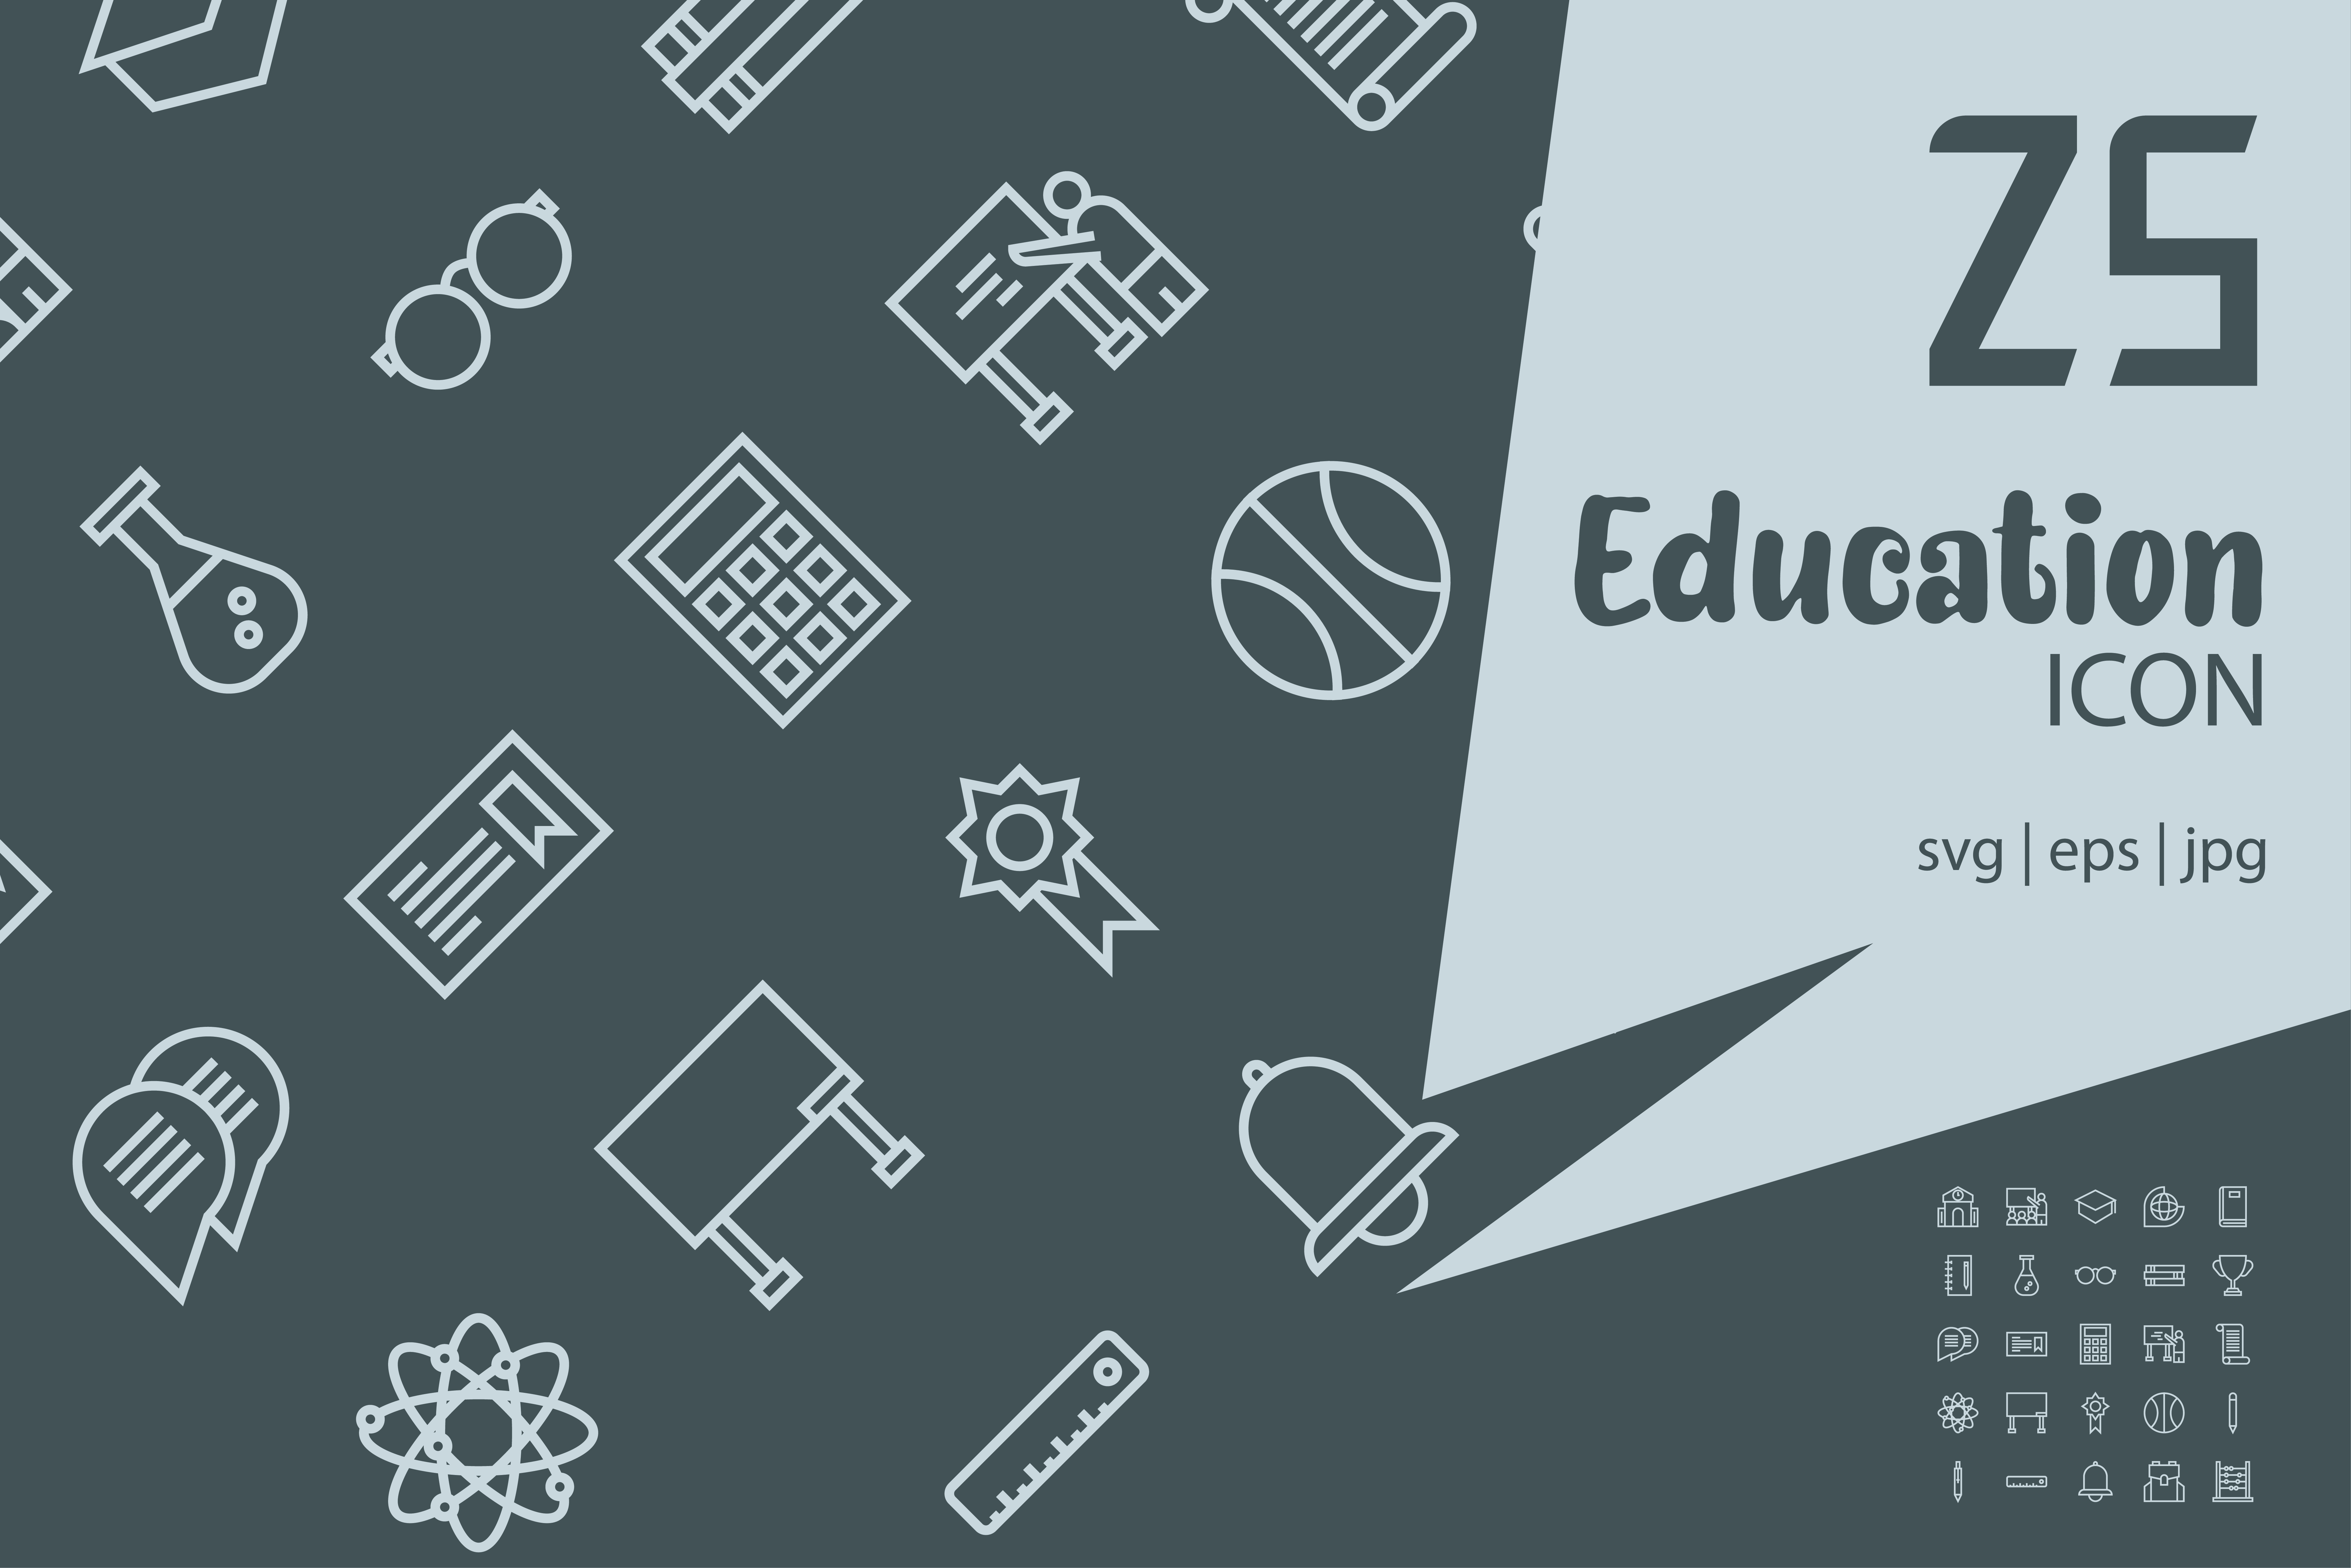 Download Free Education Graphic By Astuti Julia92 Creative Fabrica for Cricut Explore, Silhouette and other cutting machines.